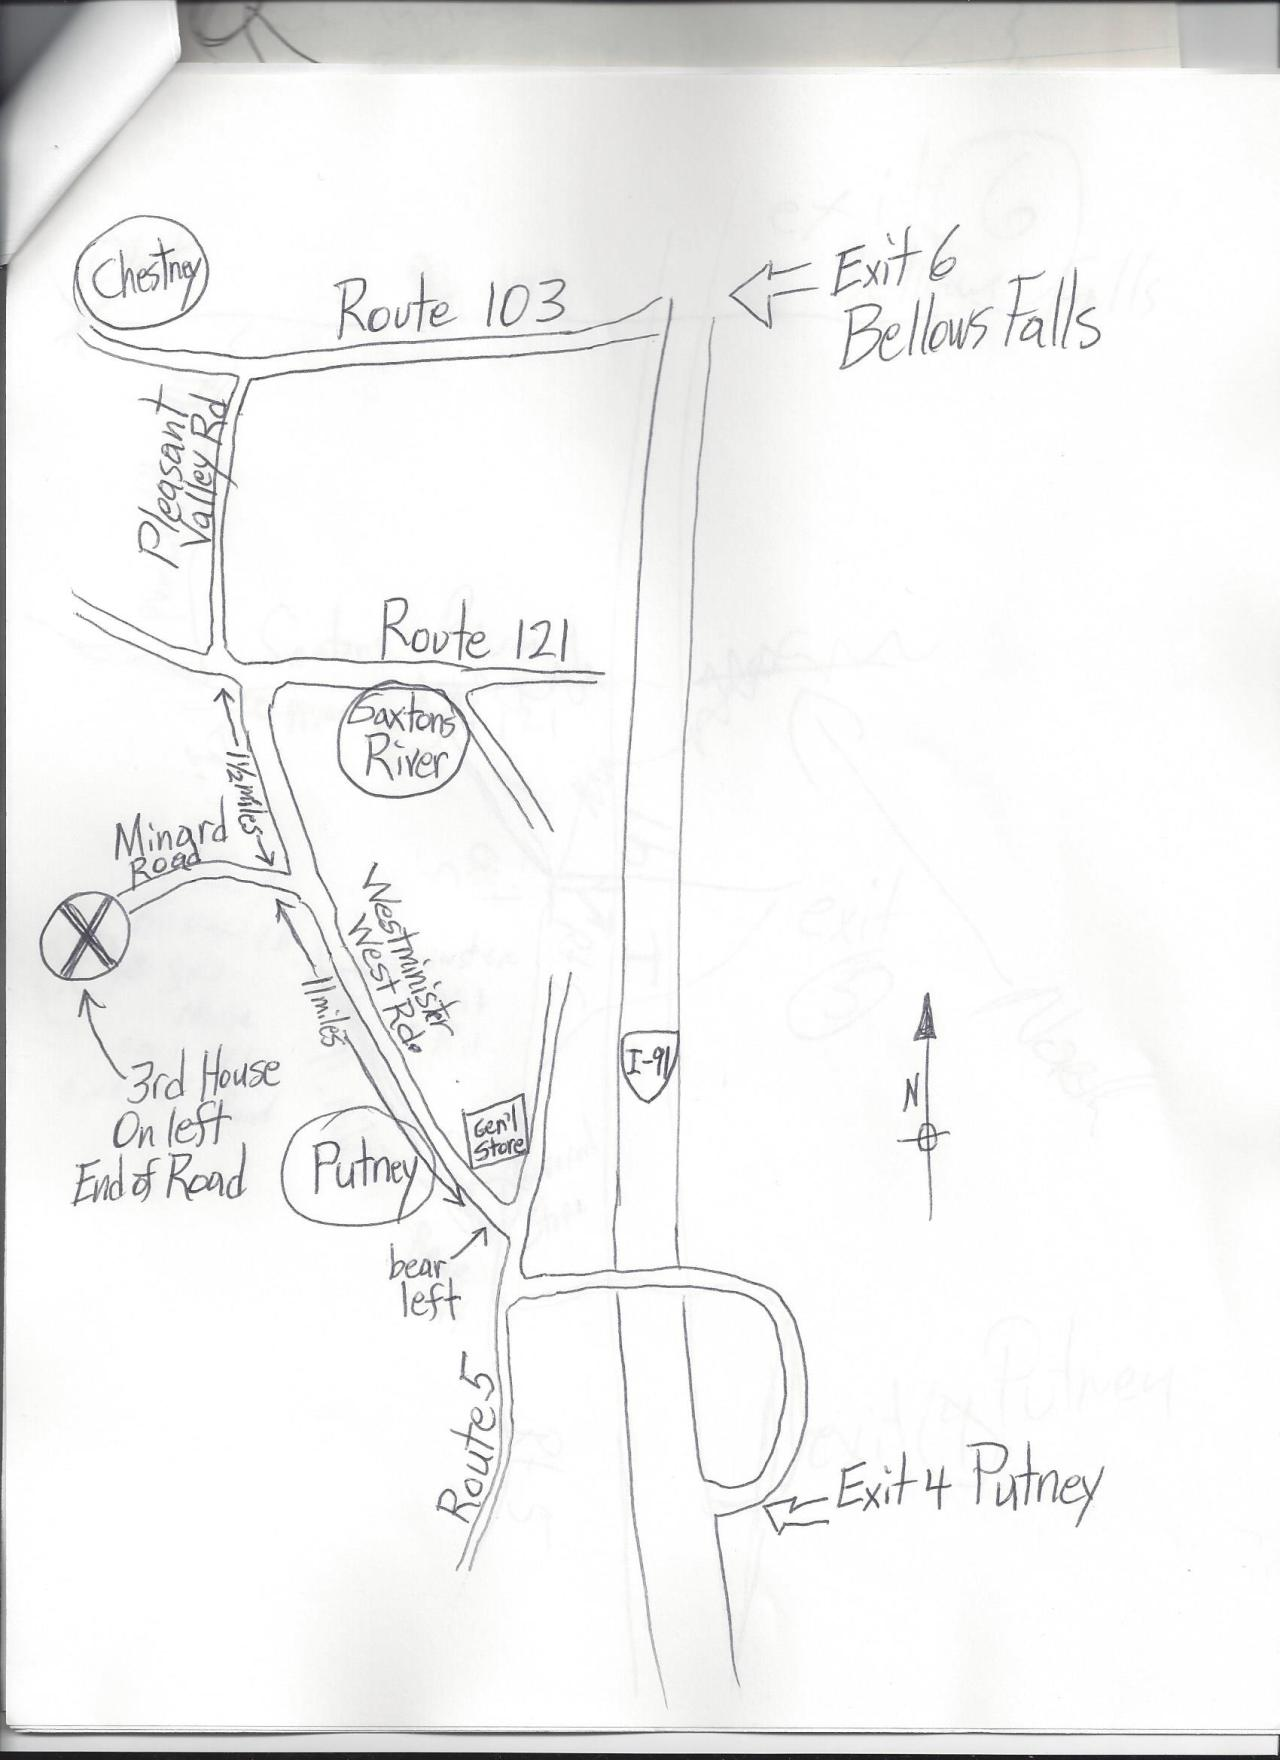 Rough sketch 2 for directions map